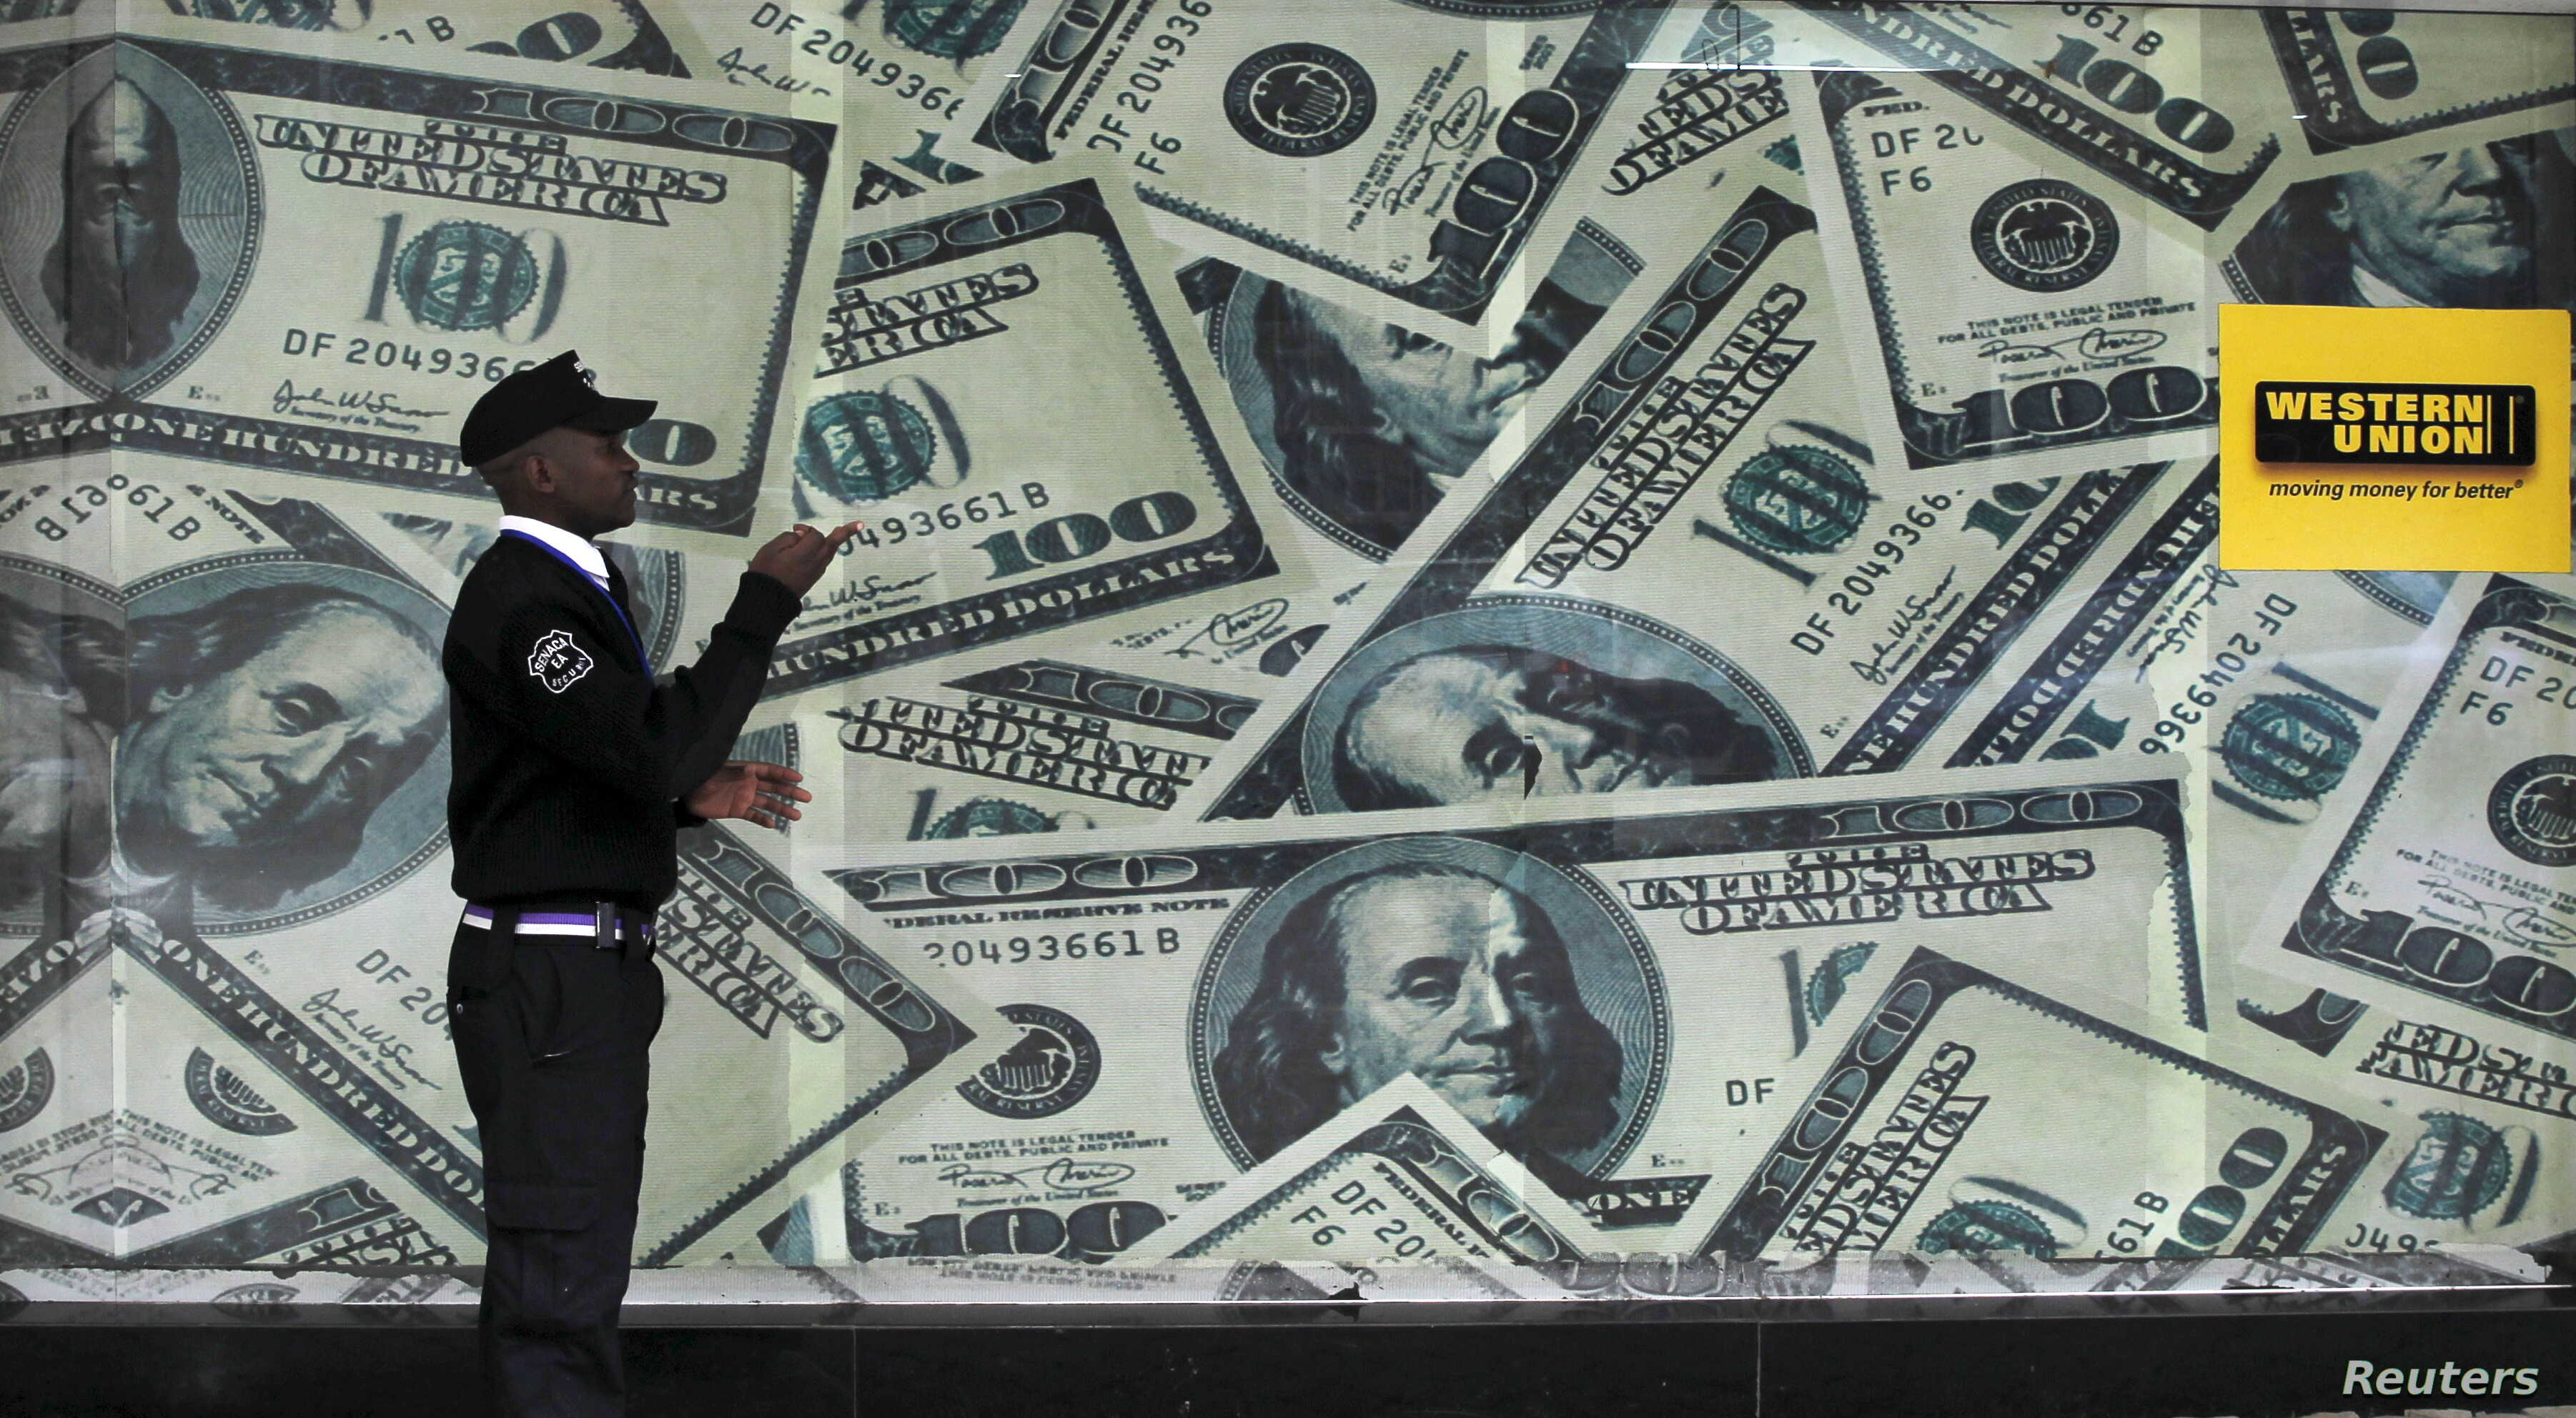 A security guard walks past a montage of old U.S. dollar bills outside a currency exchange bureau ahead of a scheduled State visit by the U.S. President Barack Obama in Kenya's capital Nairobi, July 23, 2015.